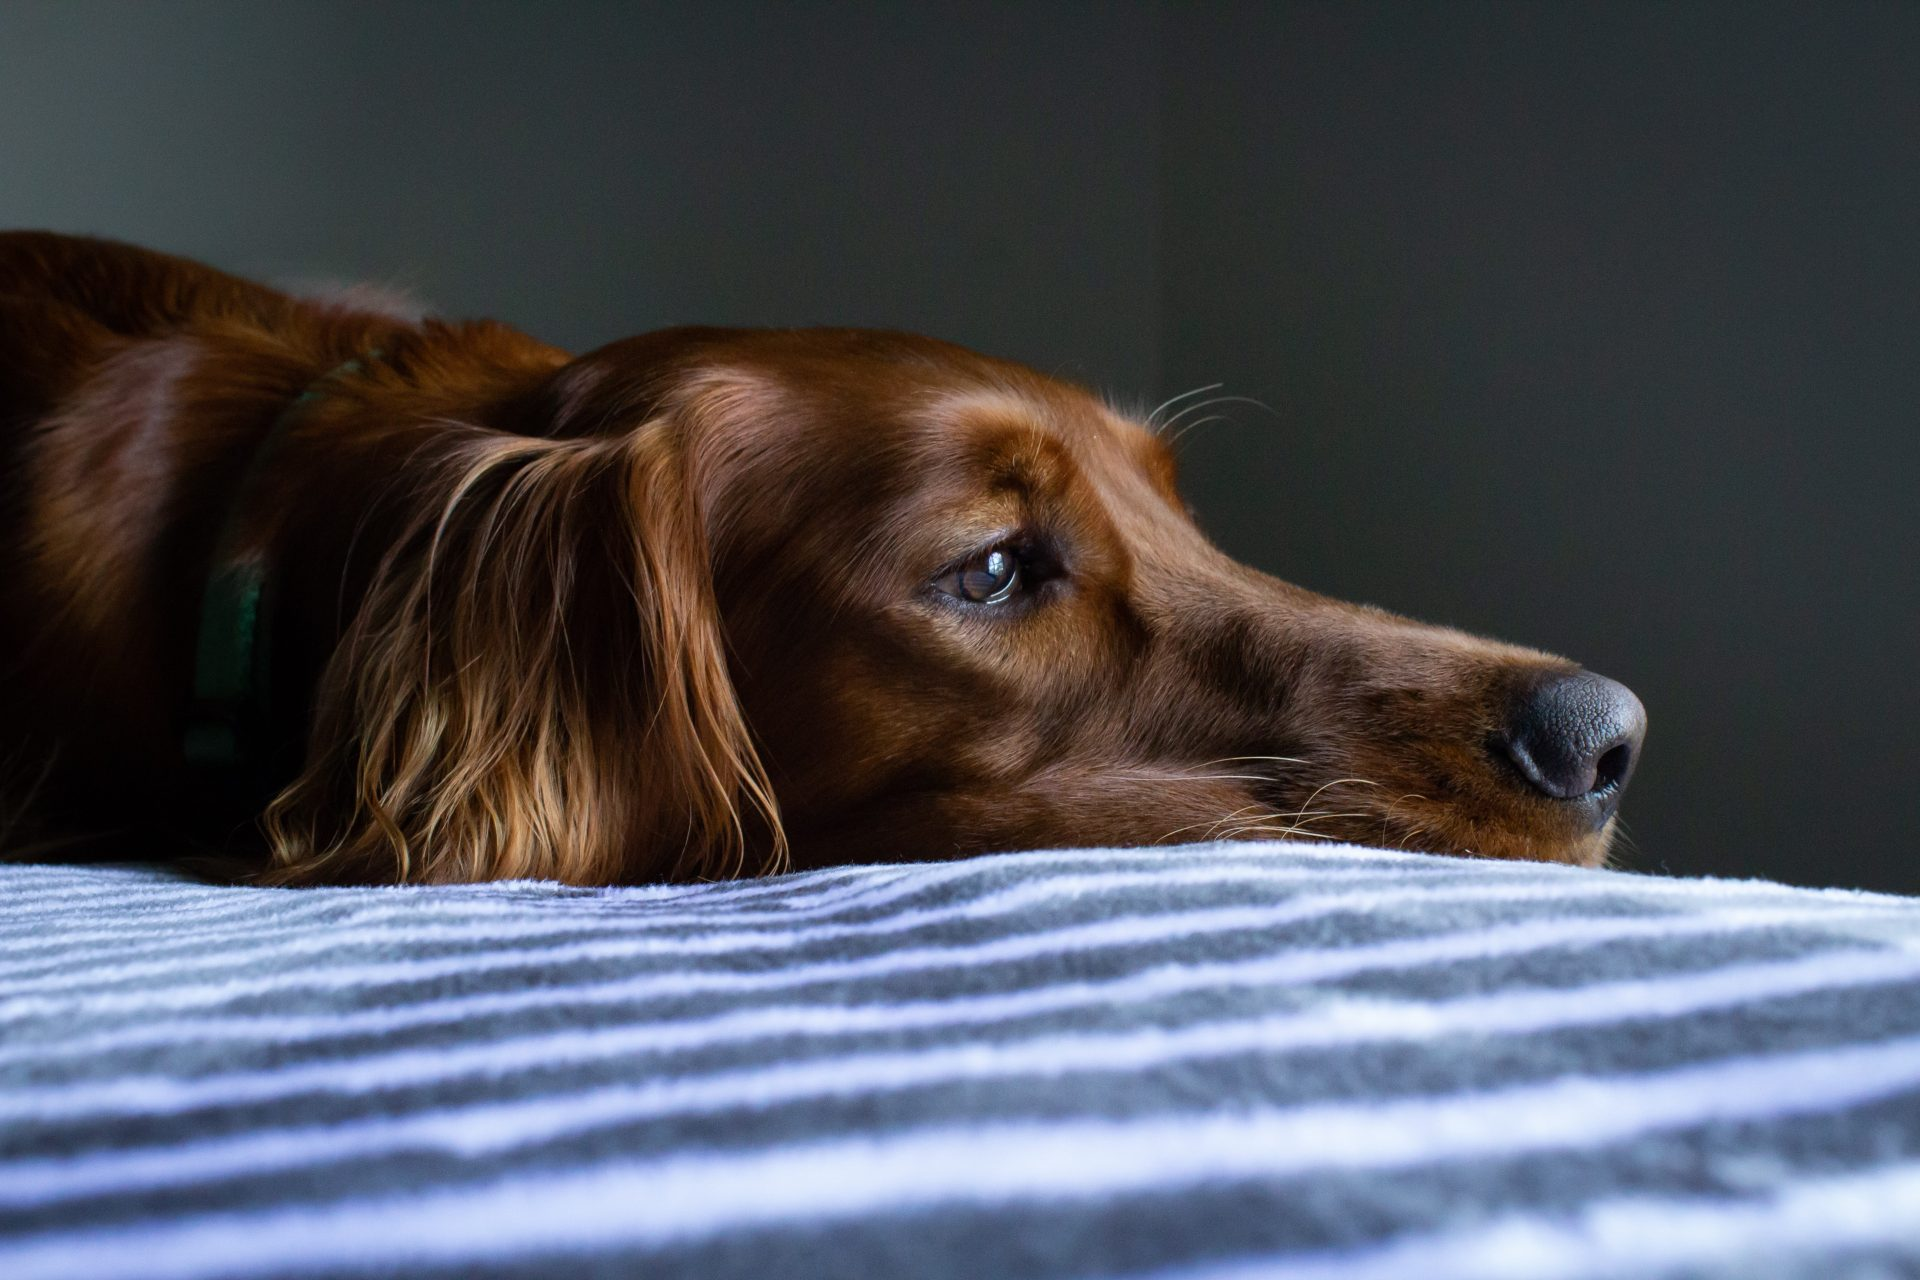 doggy daycare near me - Woofs & Wags